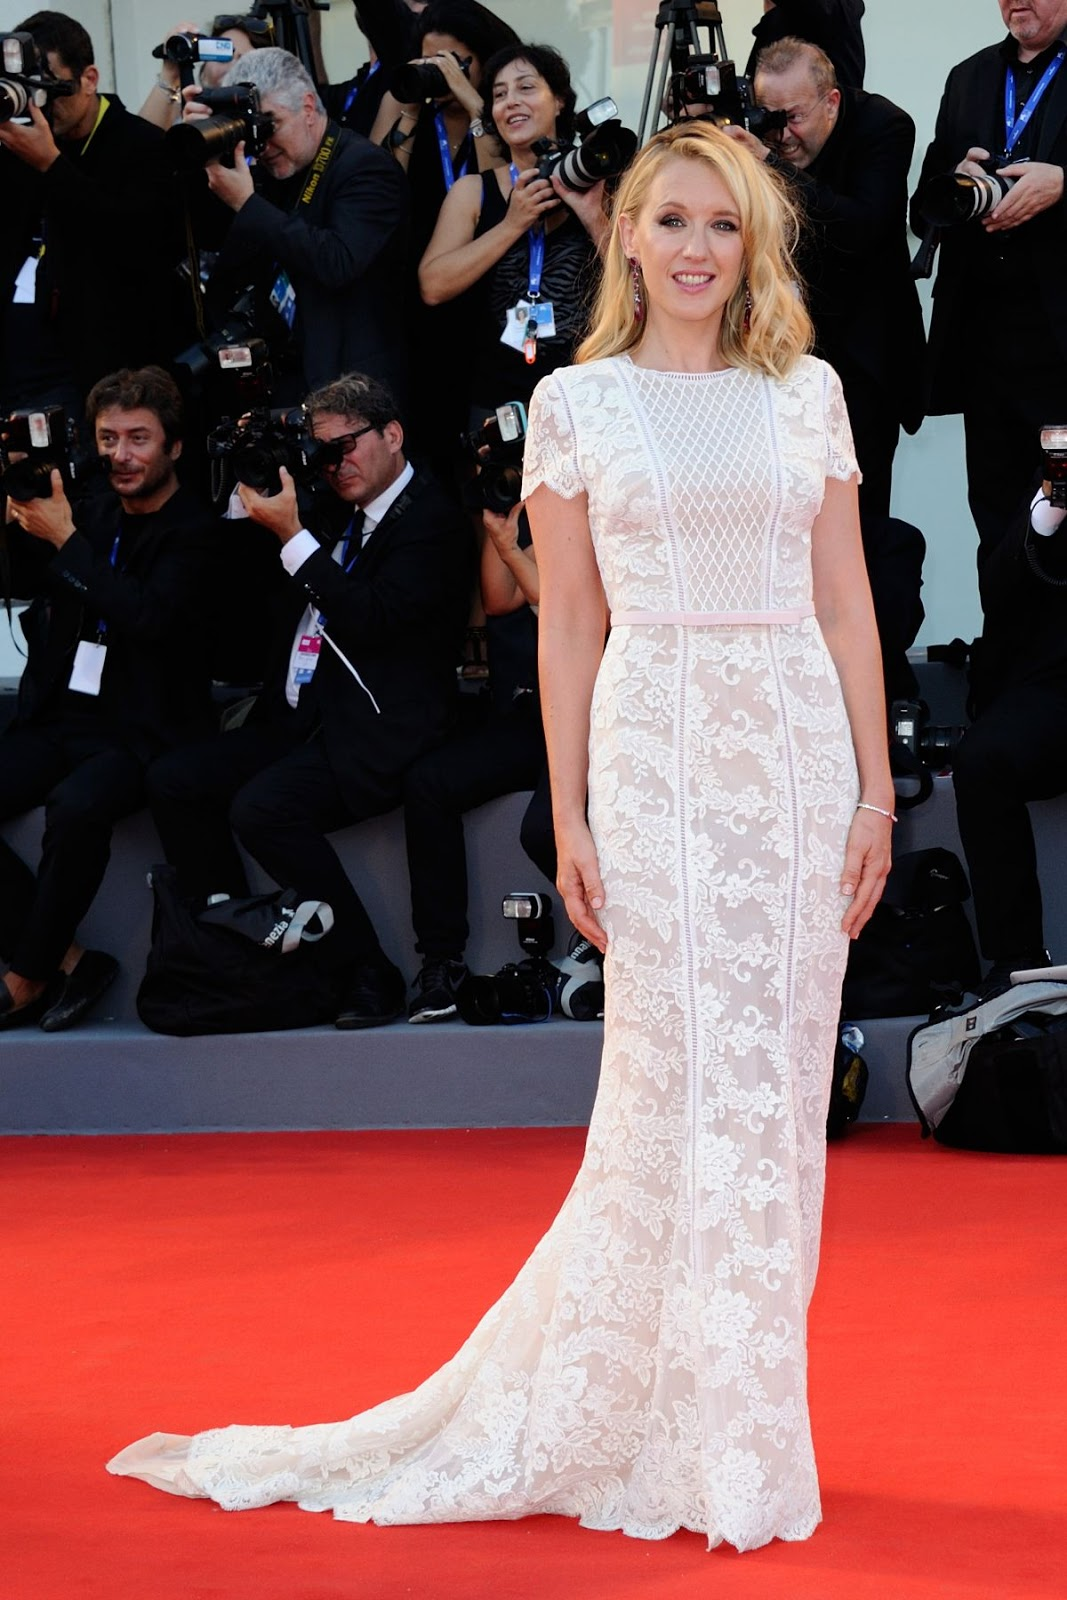 HQ Photos of Ludivine Sagnier At The Young Pope Premiere At 2016 Venice Film Festival